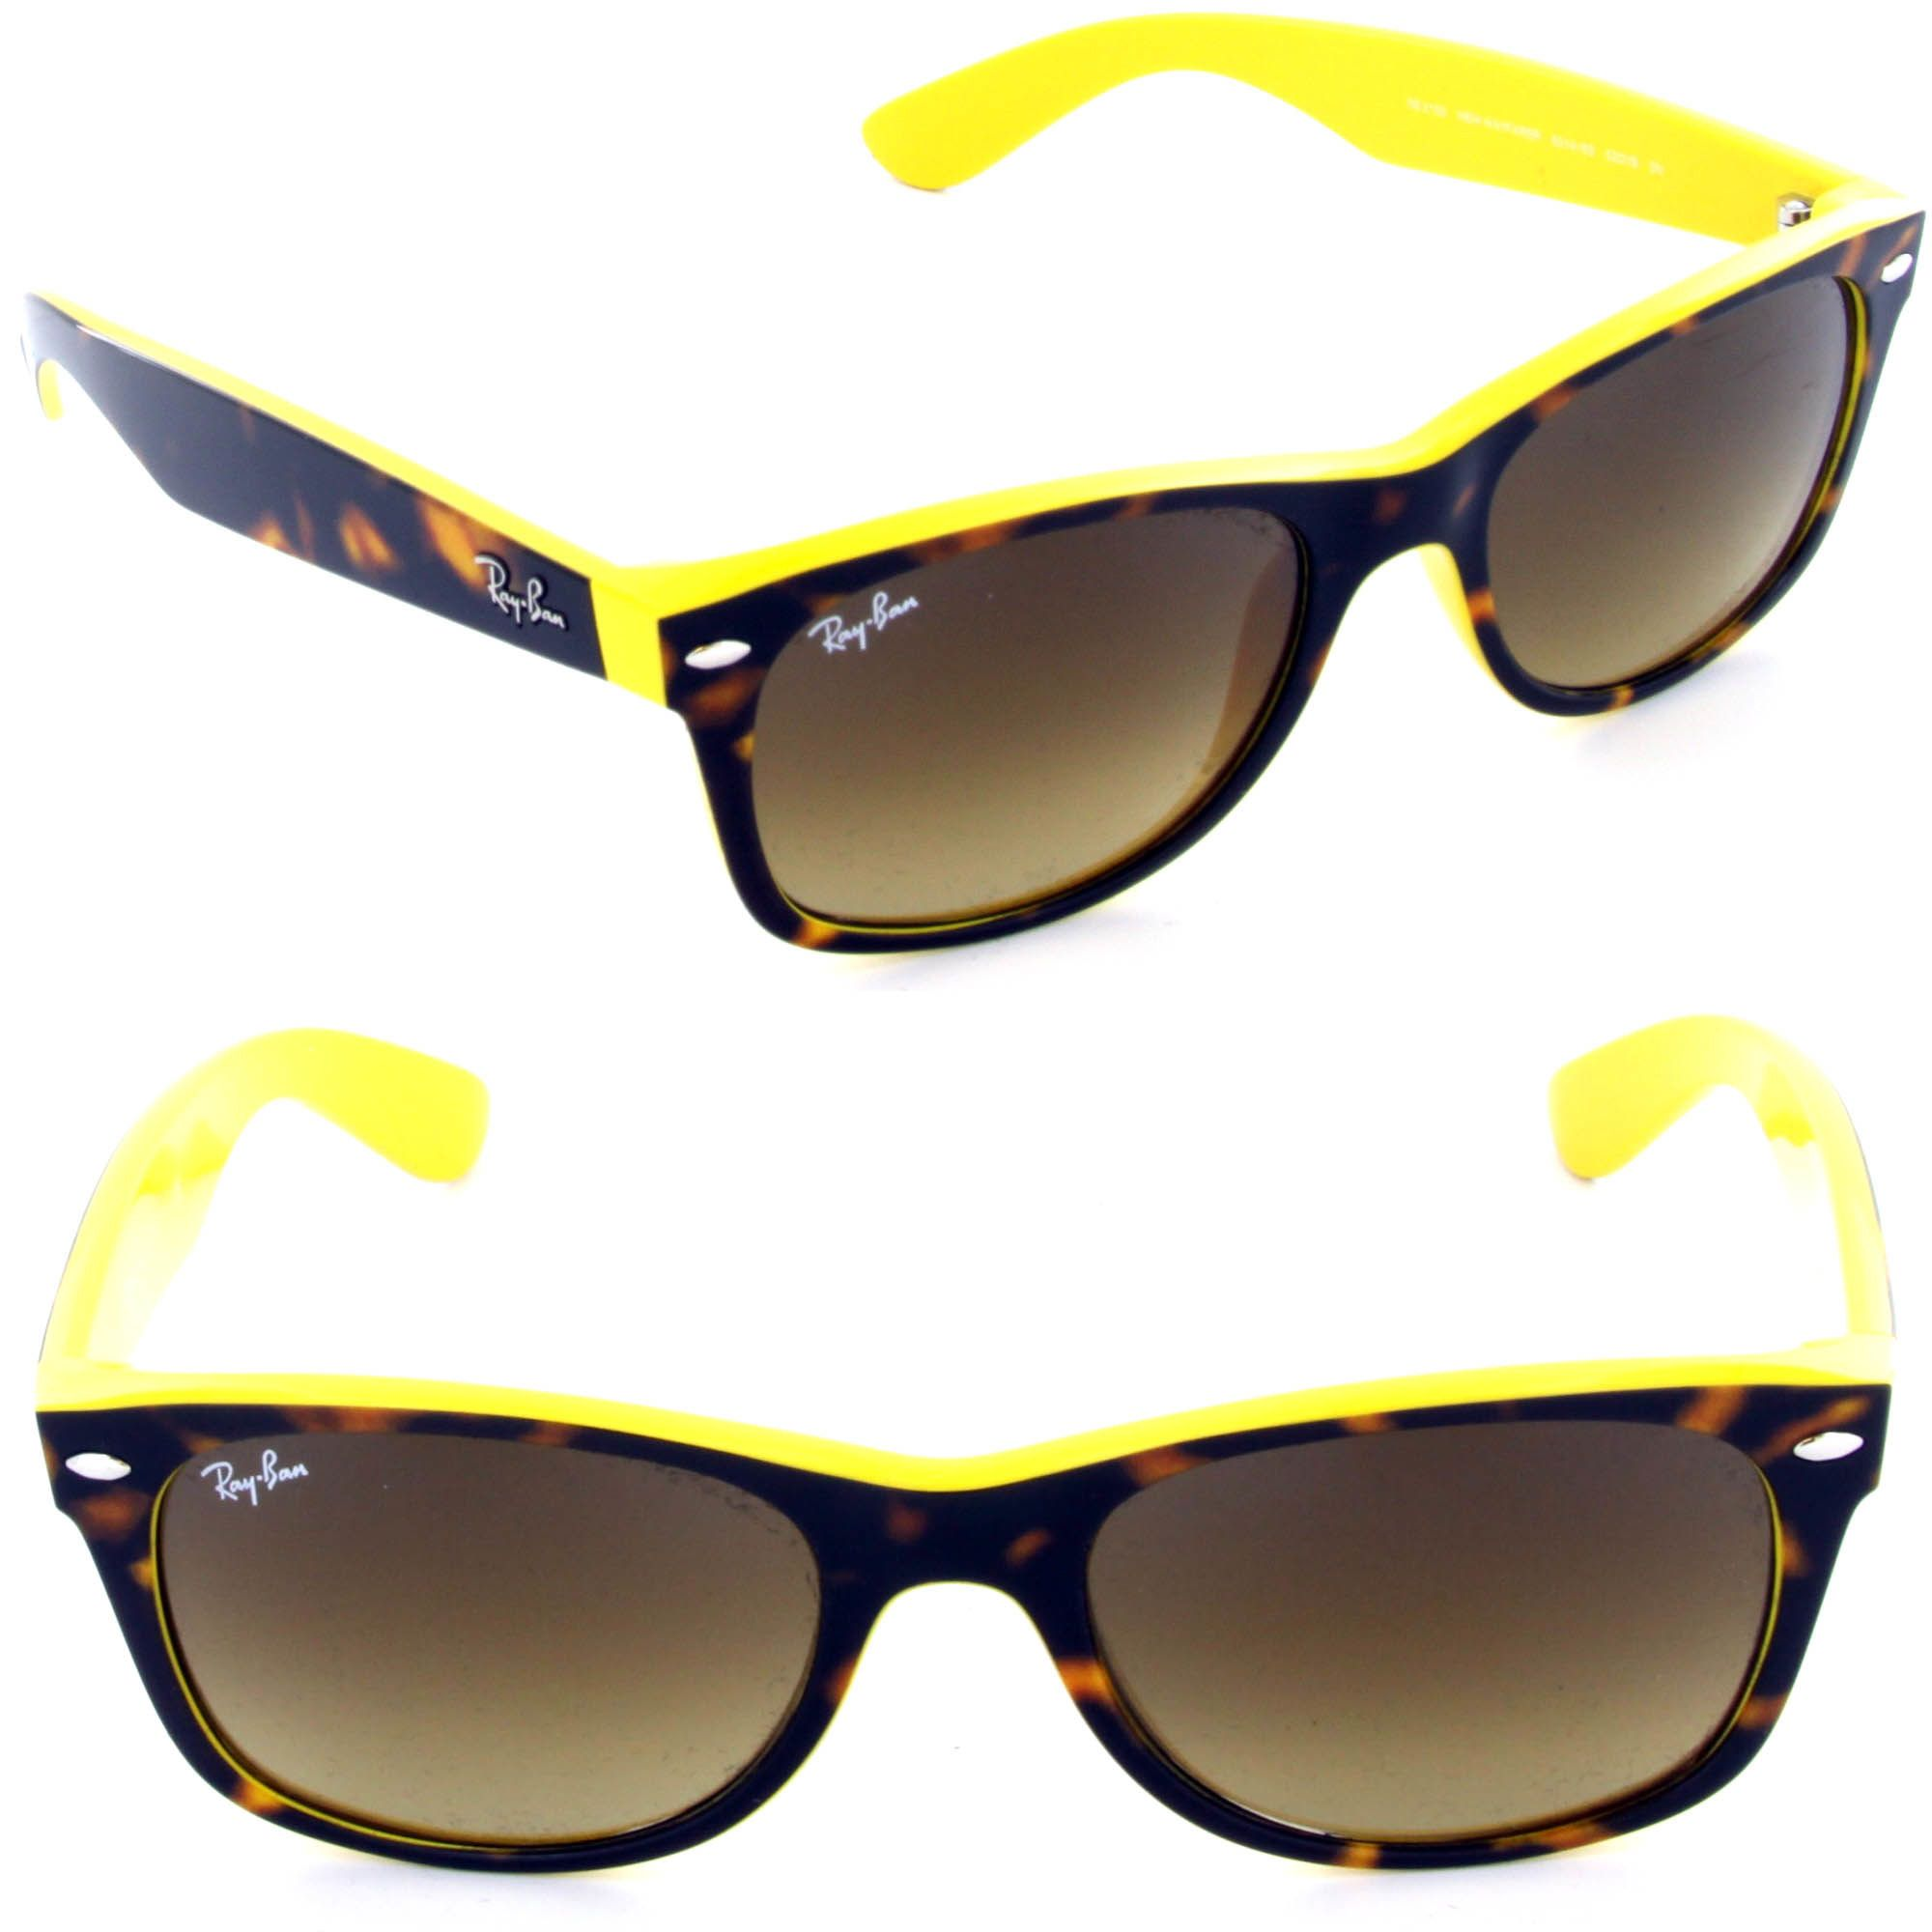 1000+ images about Sunnies on Pinterest | Ray ban aviator, Oakley sunglasses and Glasses